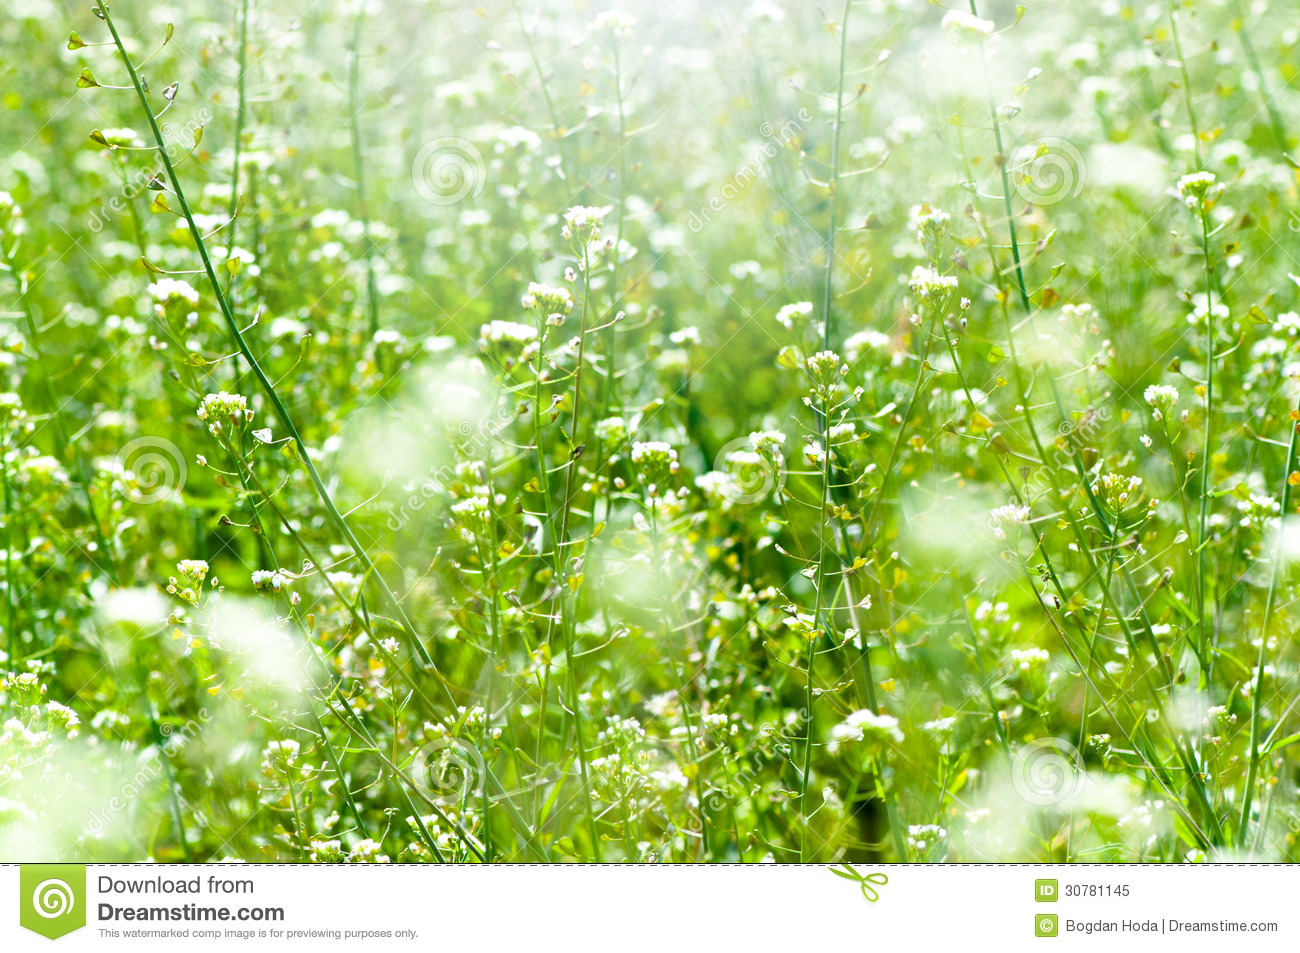 Spring And Summer Wallpaper With Green Grass And White Flowers Stock